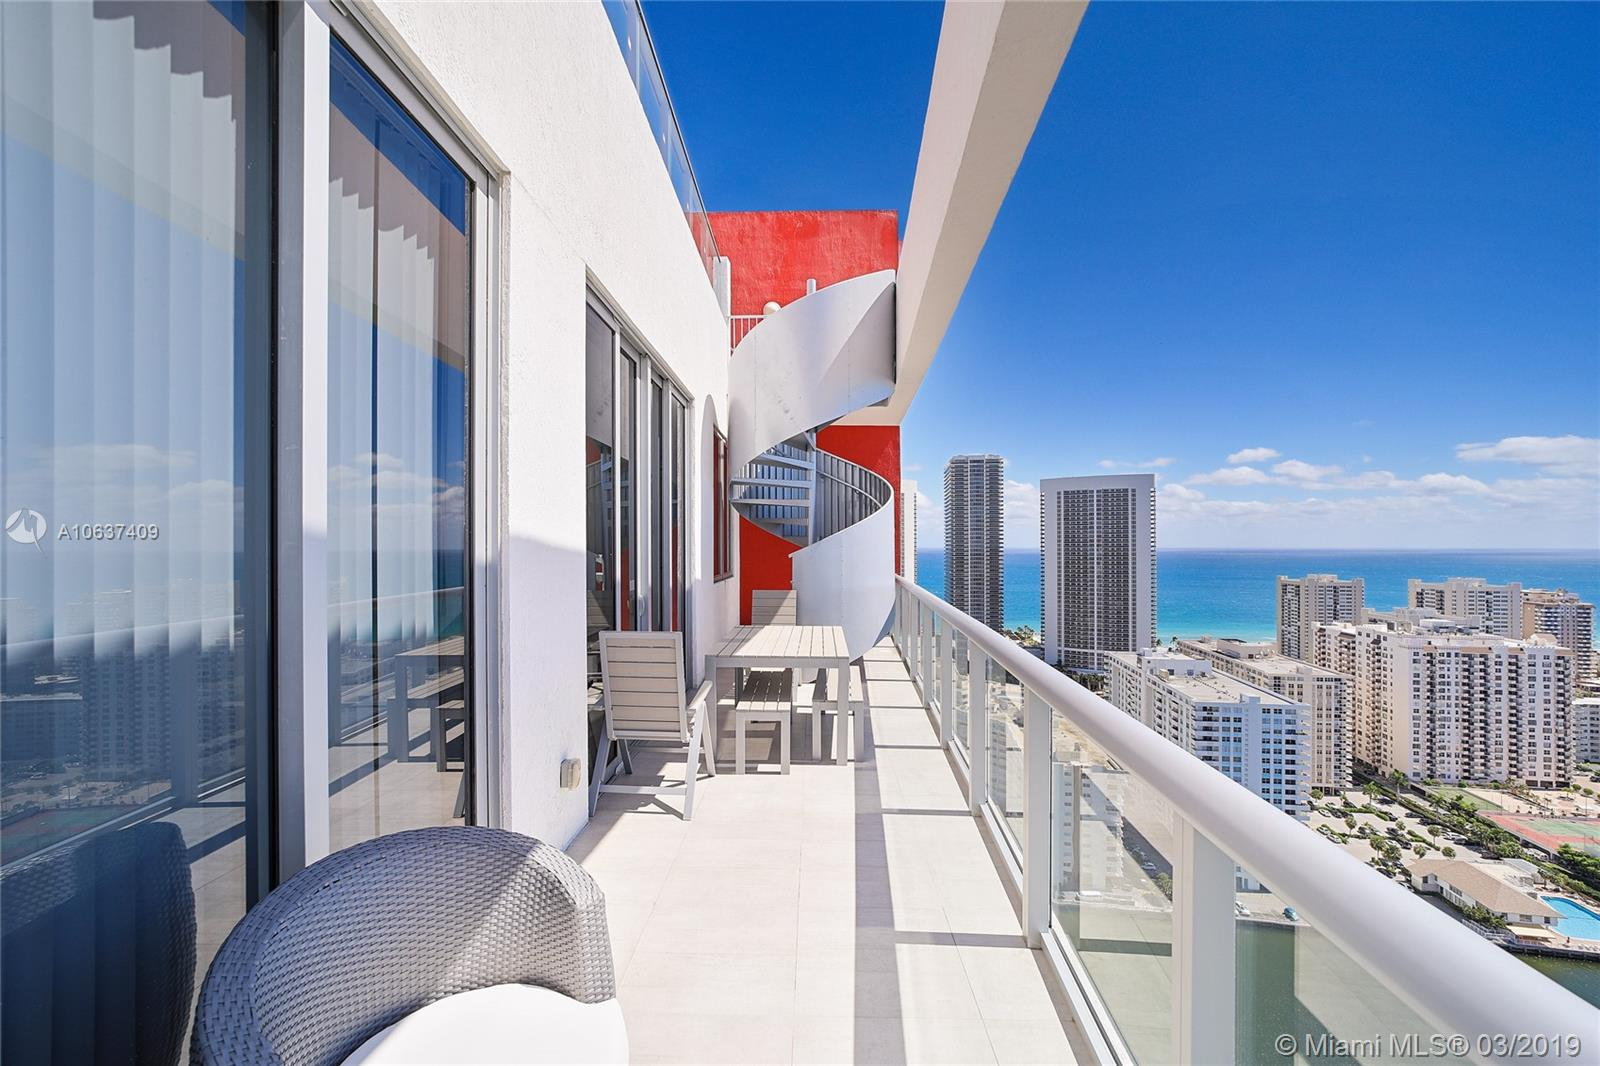 2600 East Hallandale Beach Blvd, #3309 (Penthouse), Hallandale Beach, FL 33009